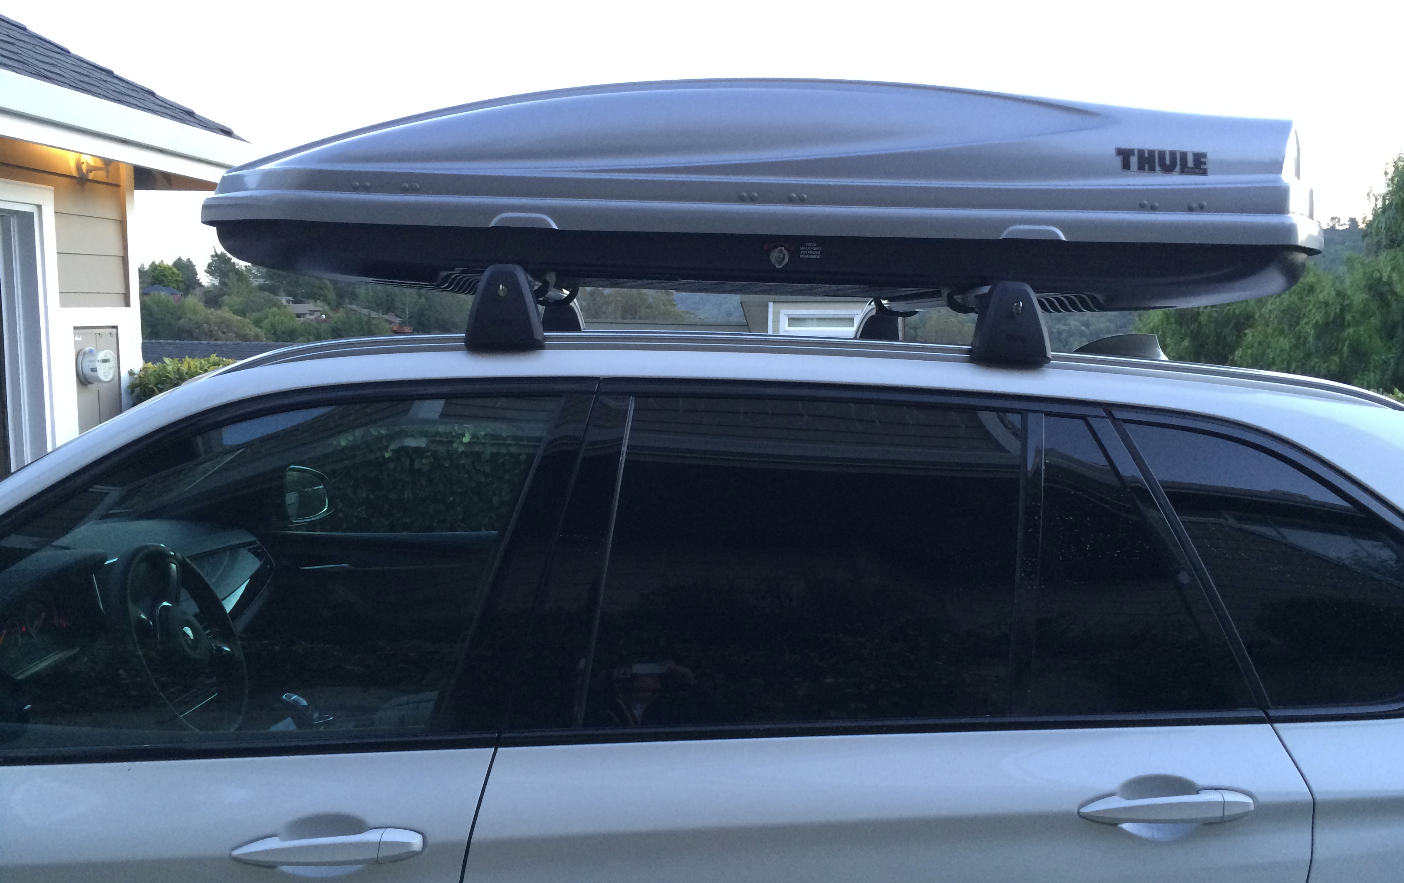 Oem Cross Bars On Roof Rails And Thule Cargo Box